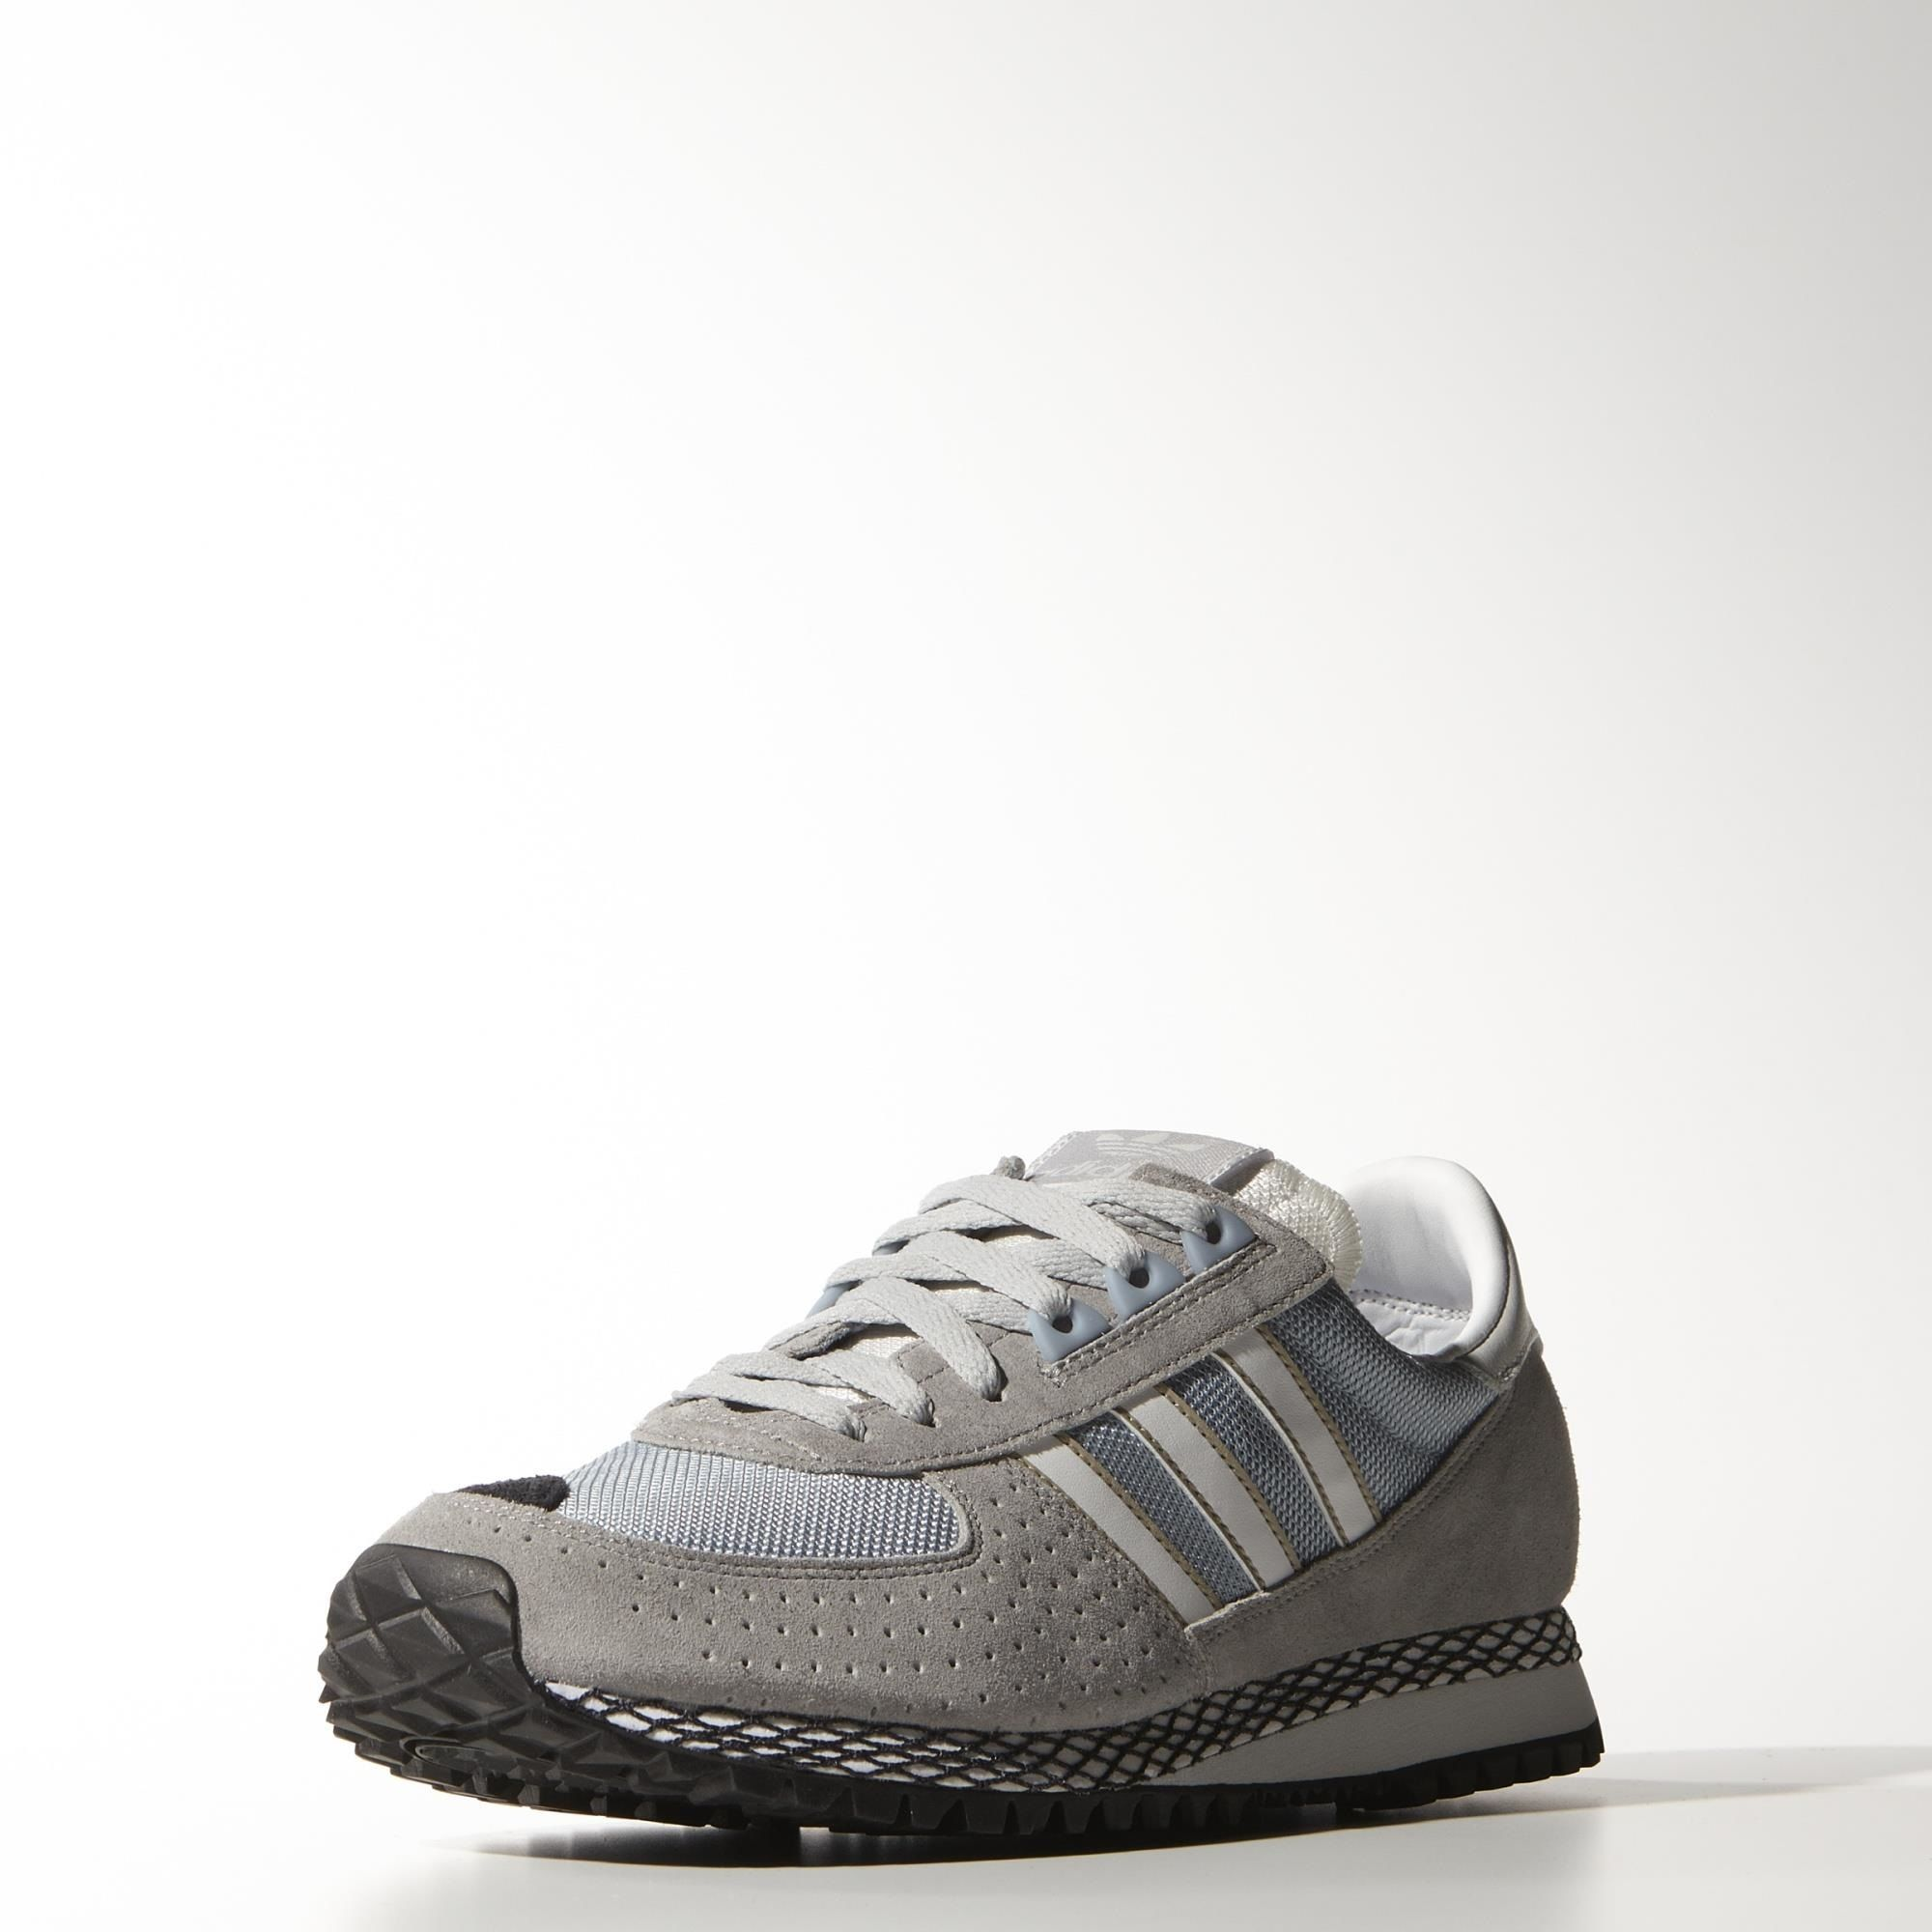 adidas - City Marathon PT Nigo Shoes  3dcdadb6d